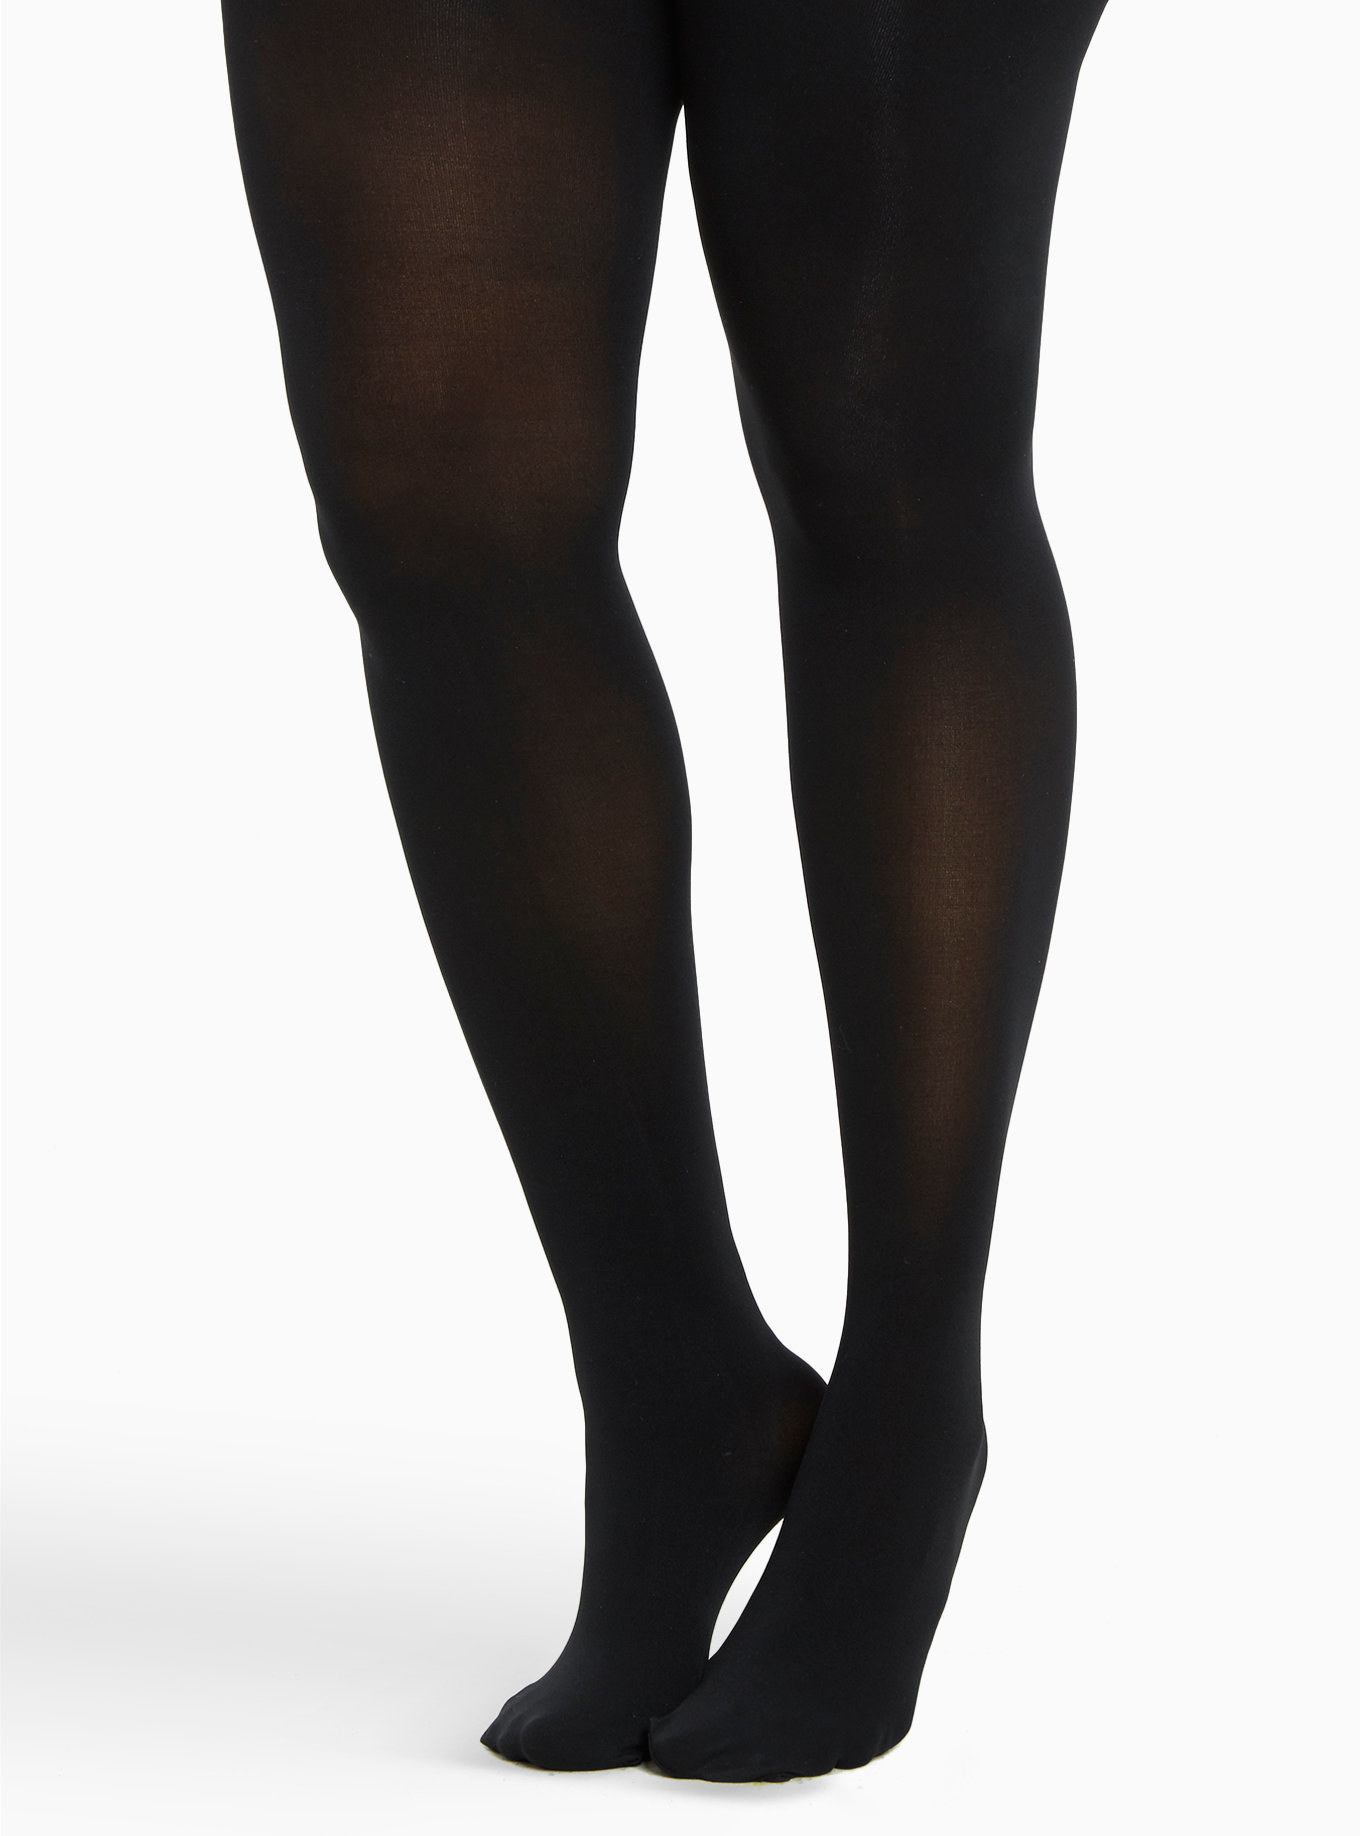 Womens Plus Size Queen Ultra Soft Microfiber Knee High Stockings 2-Pack